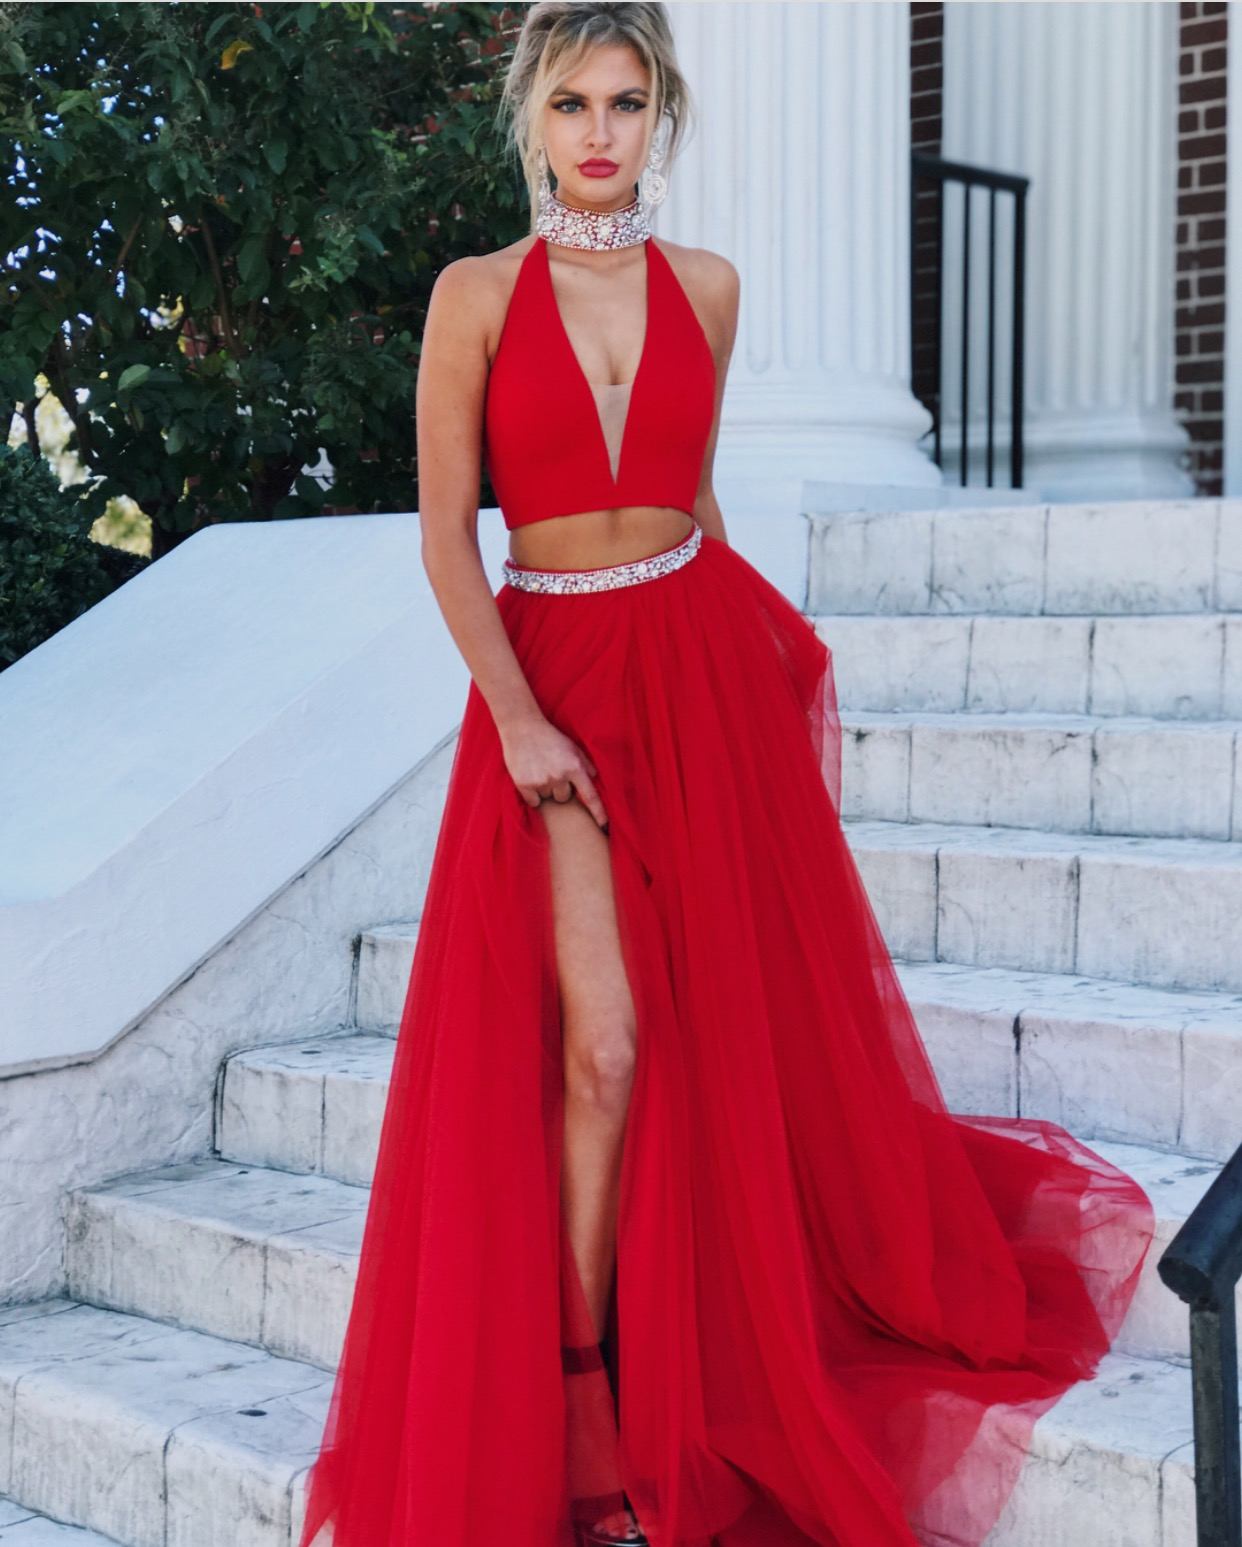 Ulass 2018 Prom Dresses,Red Evening Gowns,Two Piece Prom Dress,High ...